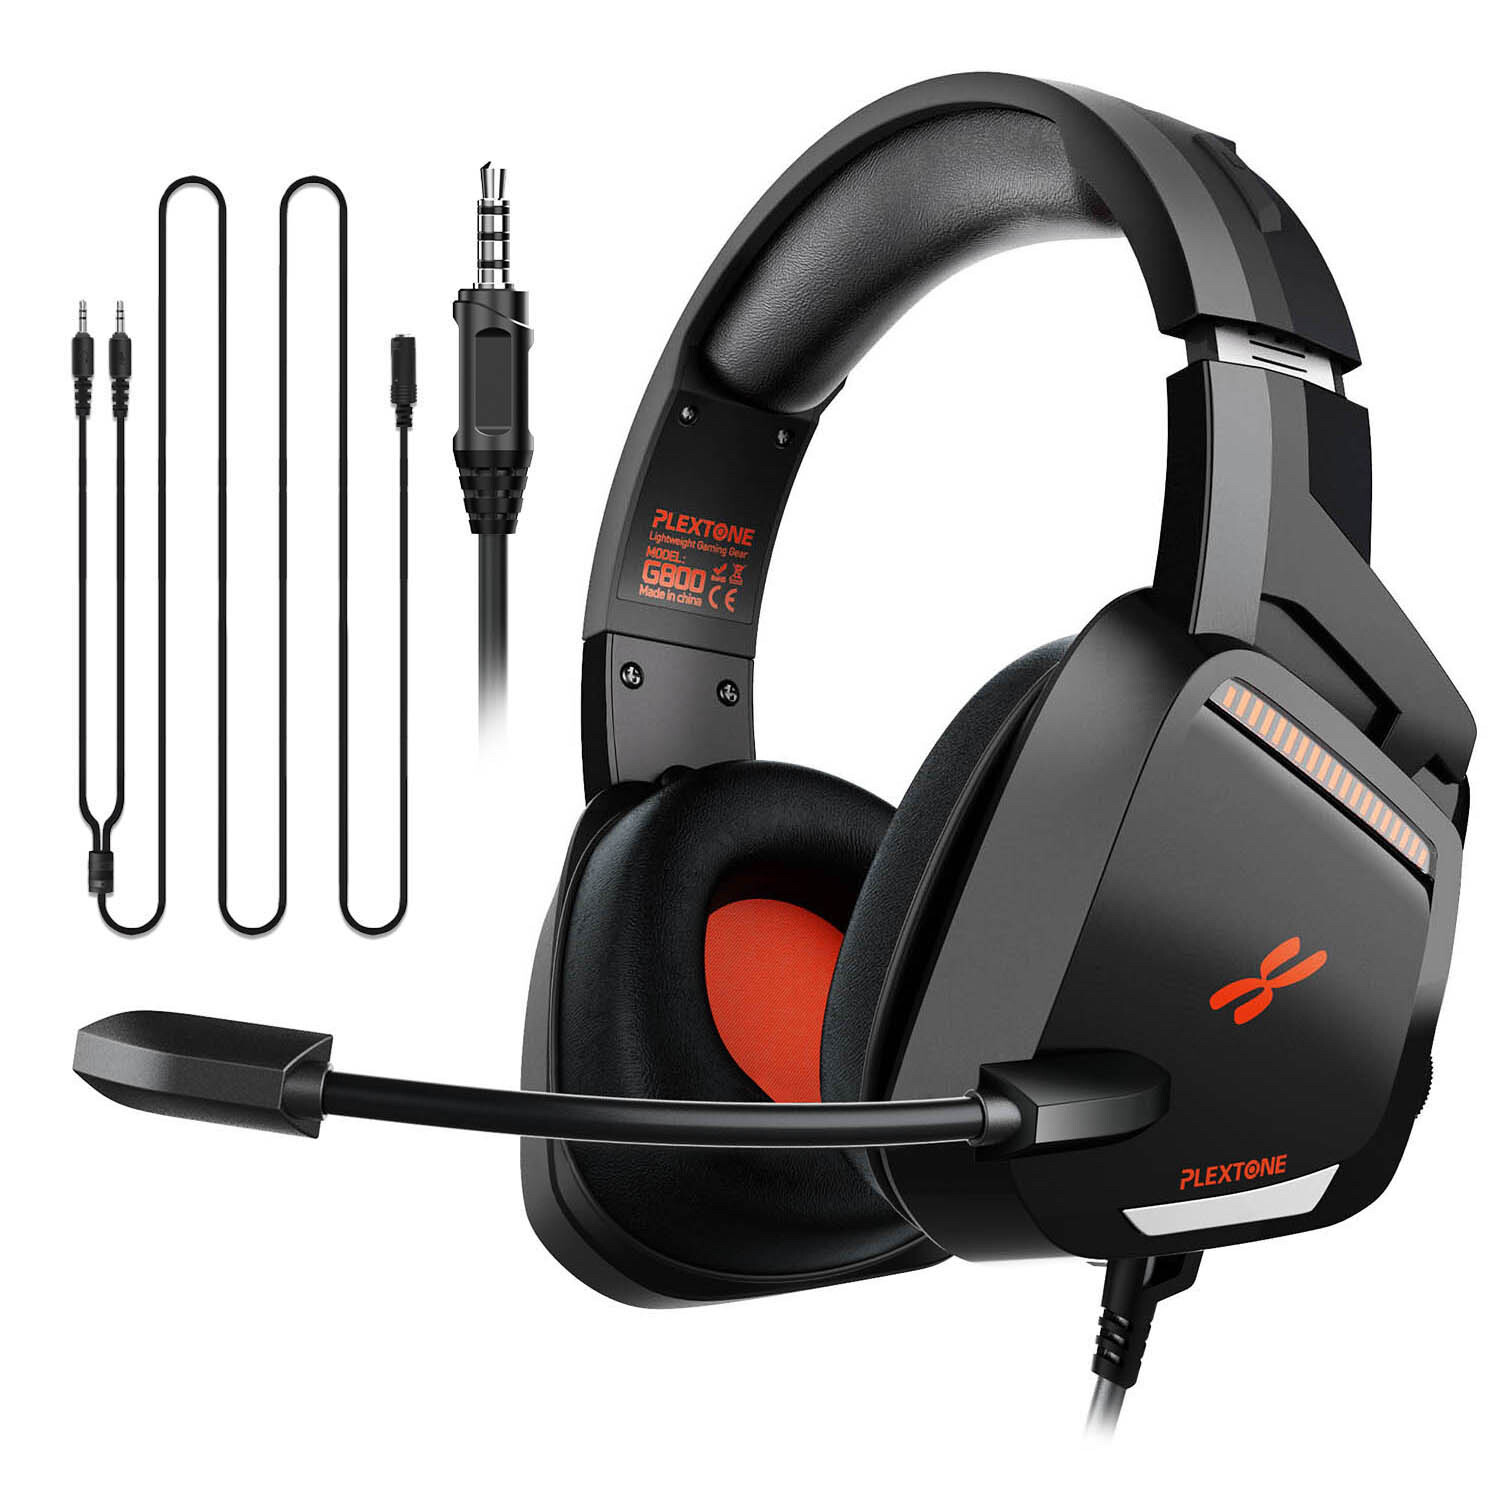 Plextone G800 Gaming Headset,3.5mm over-ear Headphones with Volume Controller and Retractable Microphone